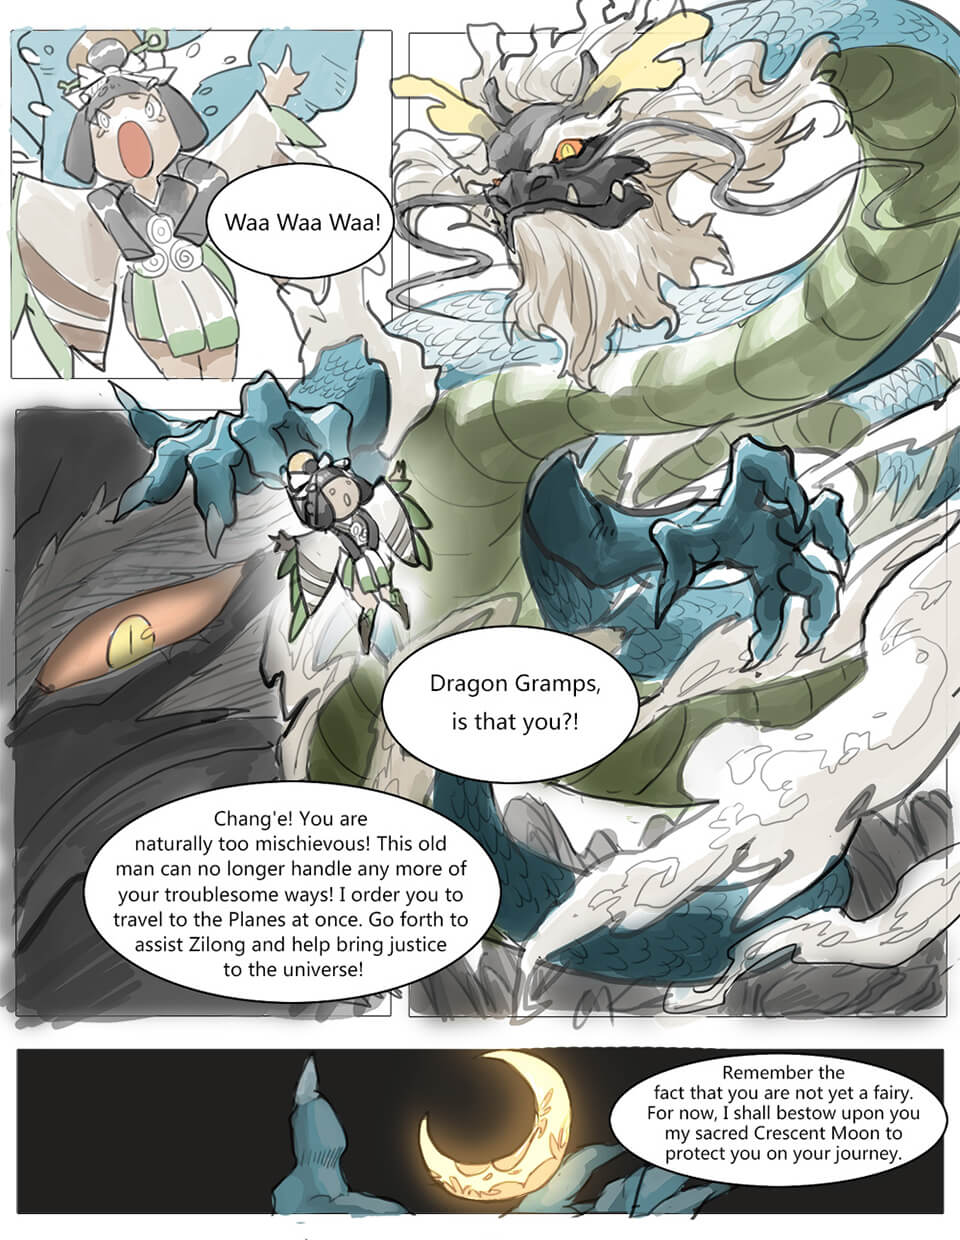 Mobile Legends: Bang Bang: The Origin of Chang'e - Comic page 6